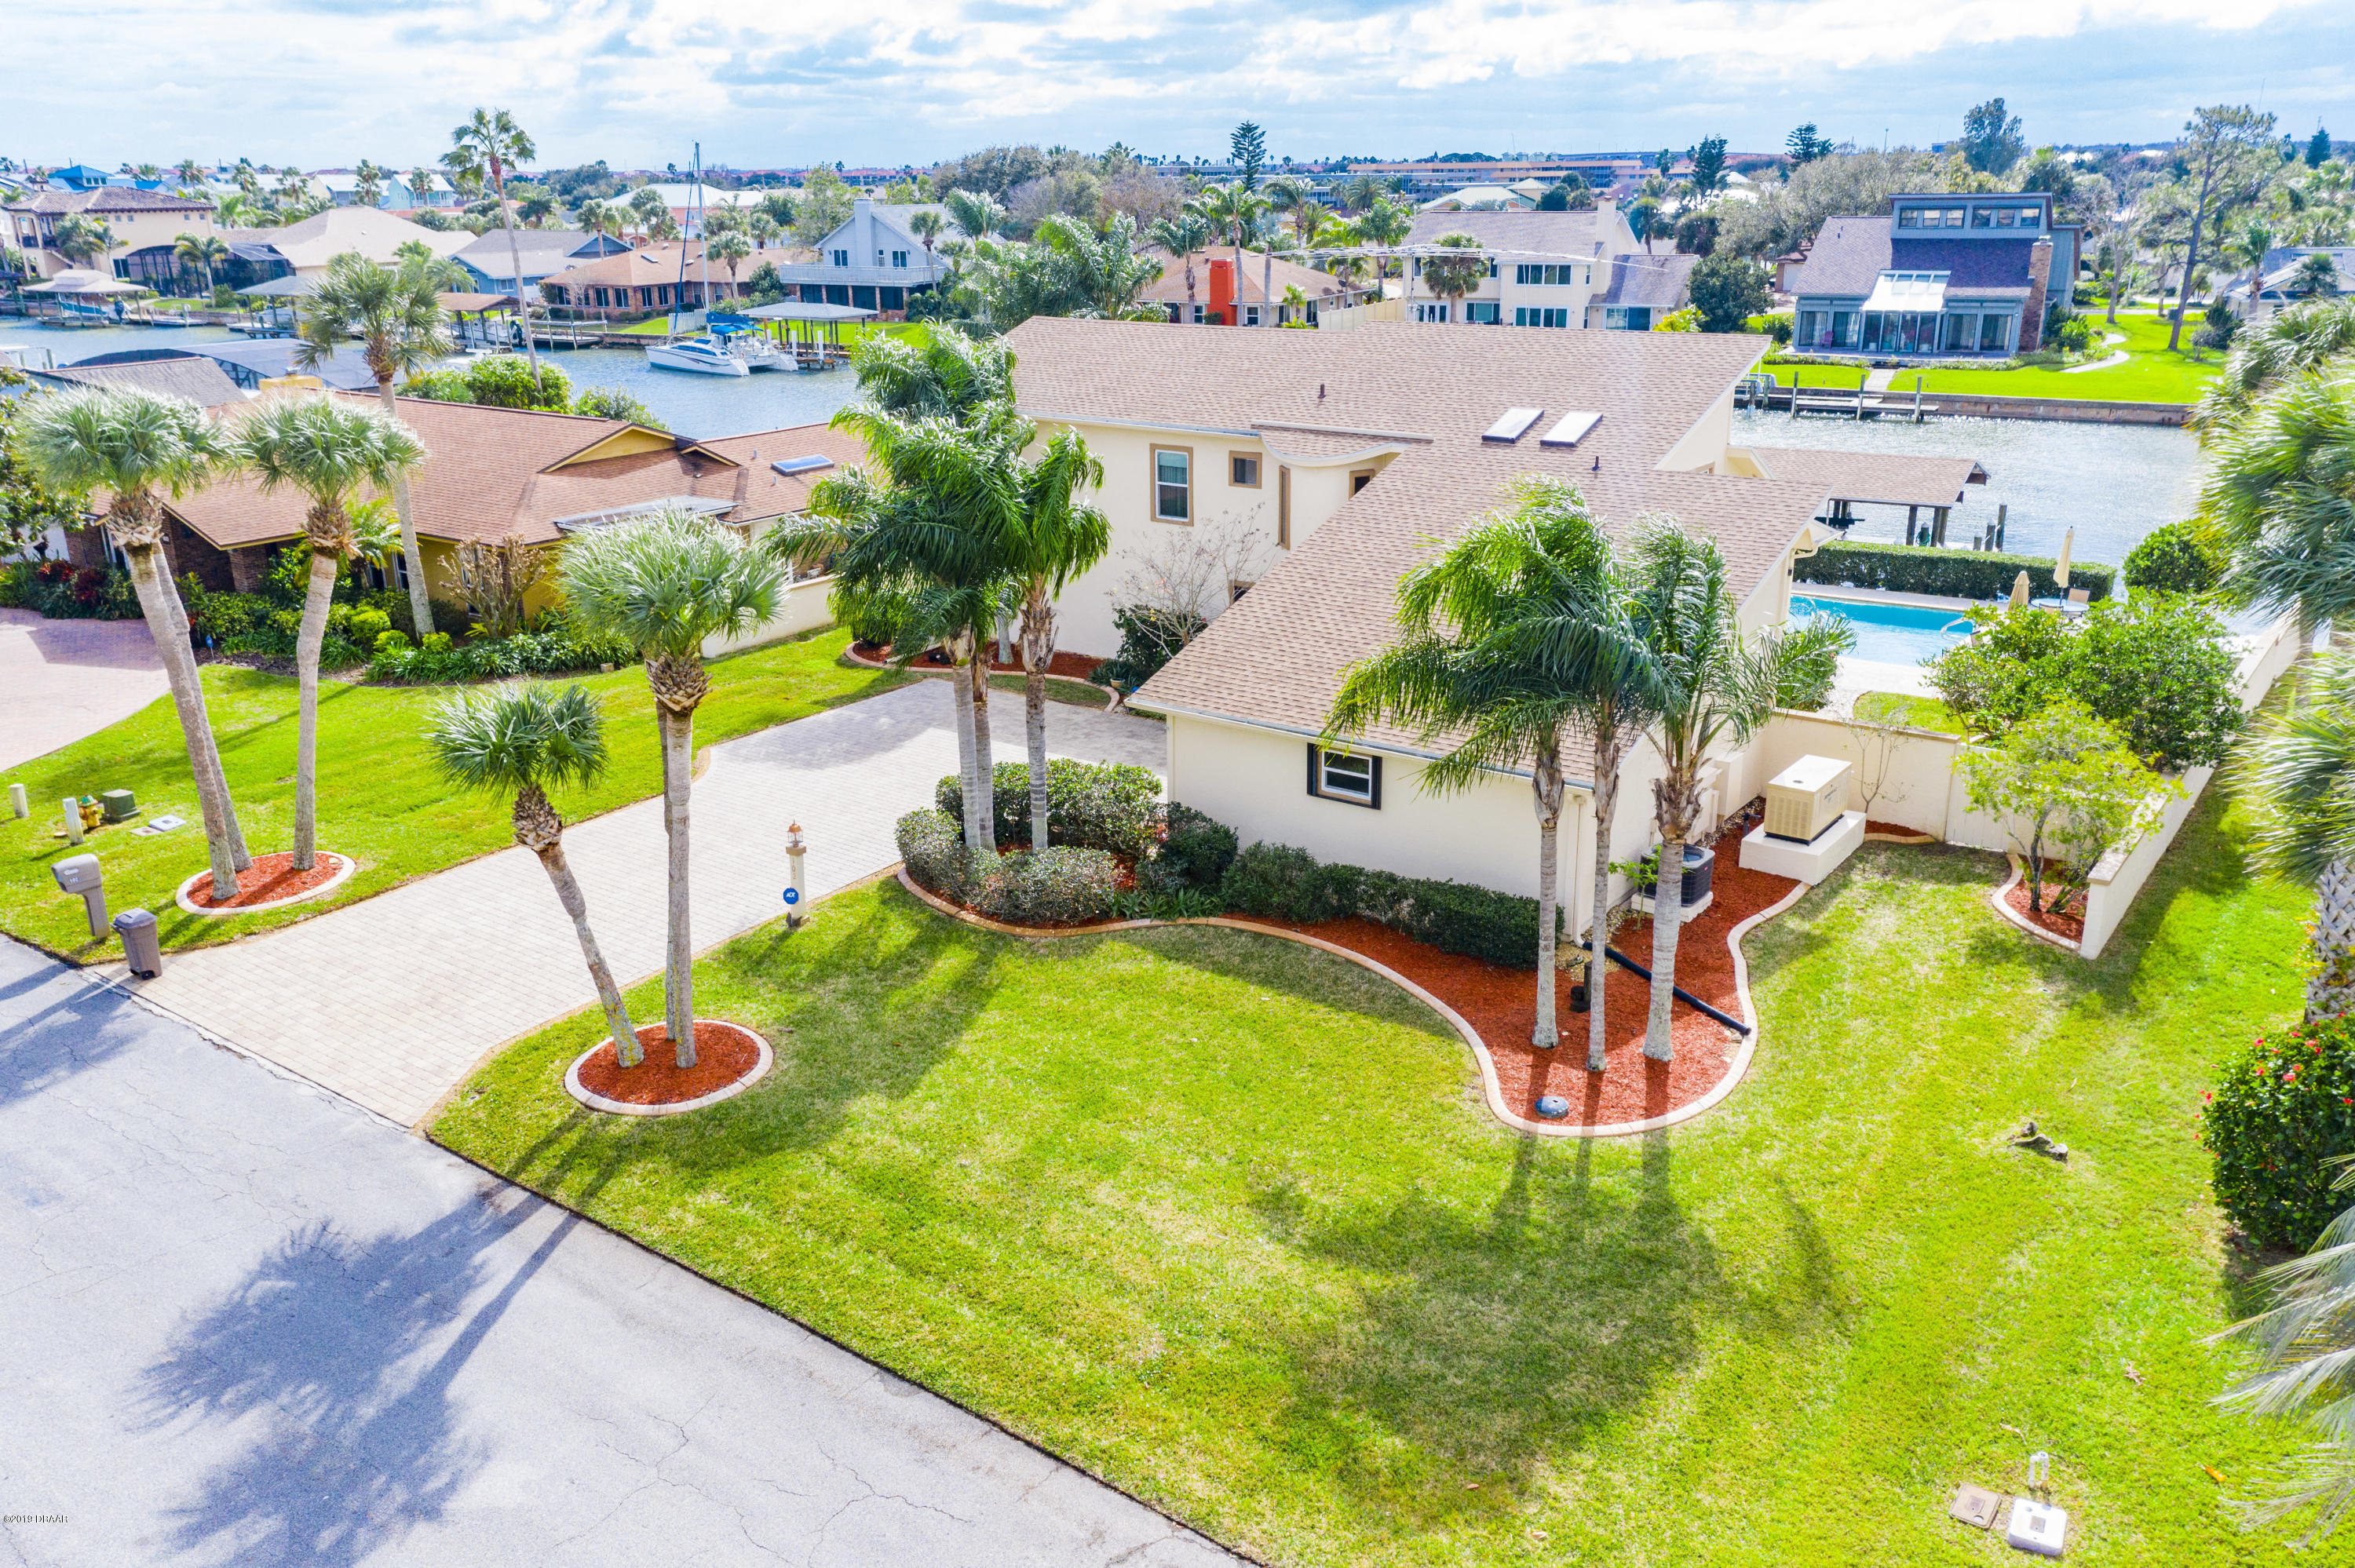 Photo of 102 Via Duomo, New Smyrna Beach, FL 32169